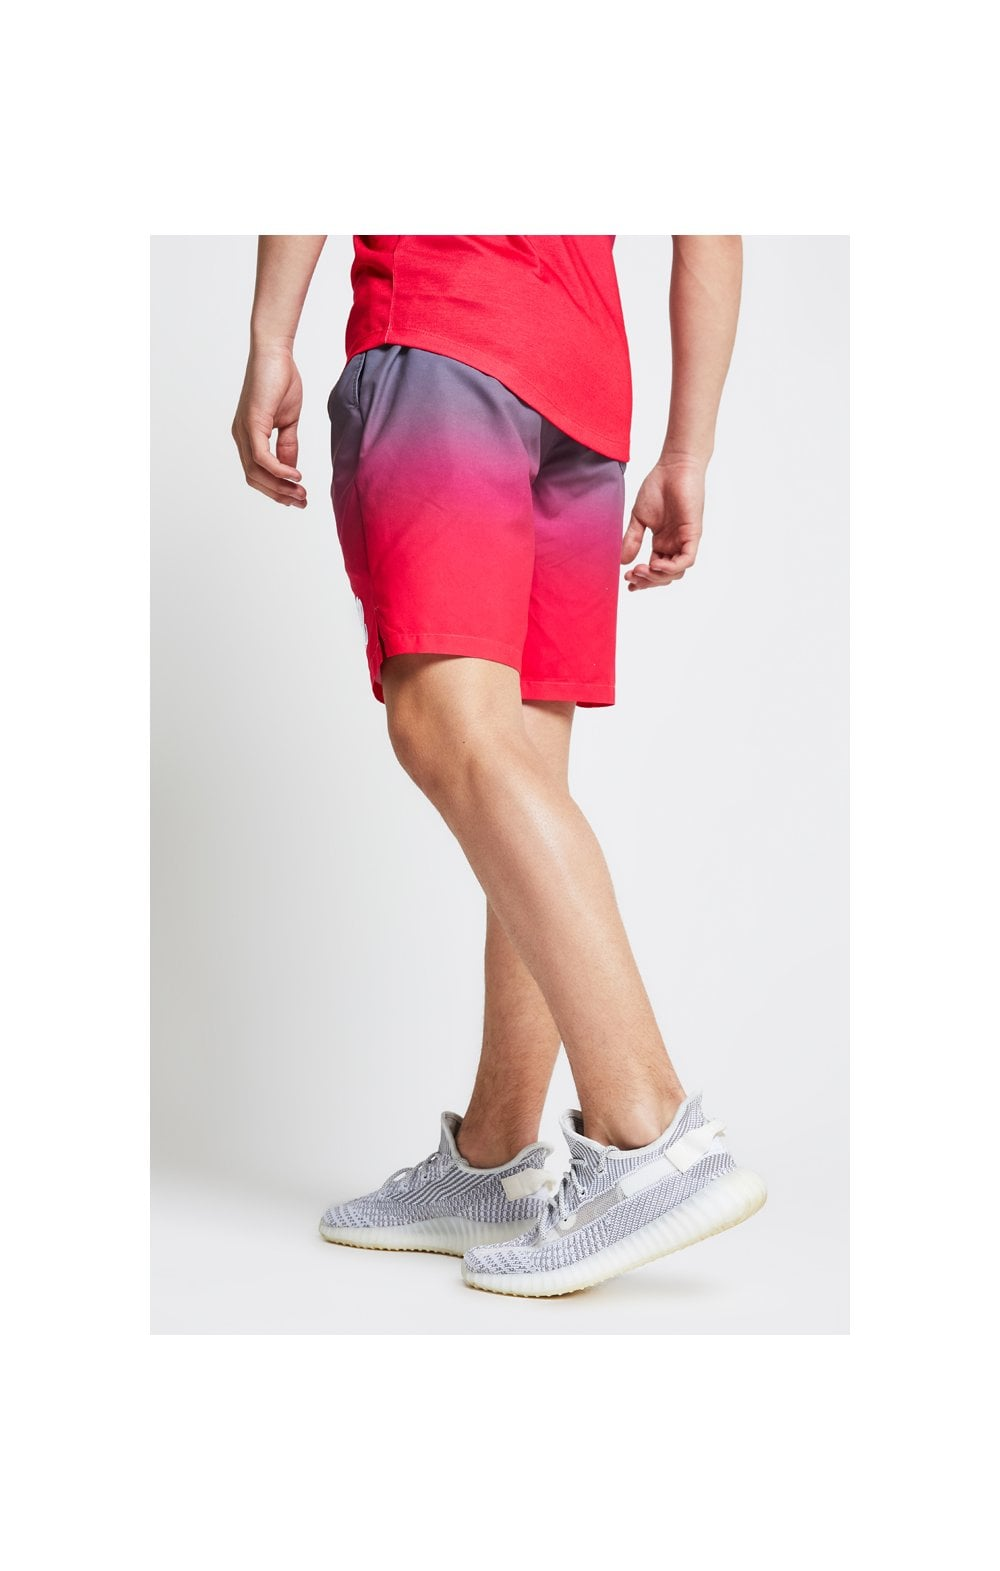 Illusive London Fade Swim Shorts - Grey & Pink (5)